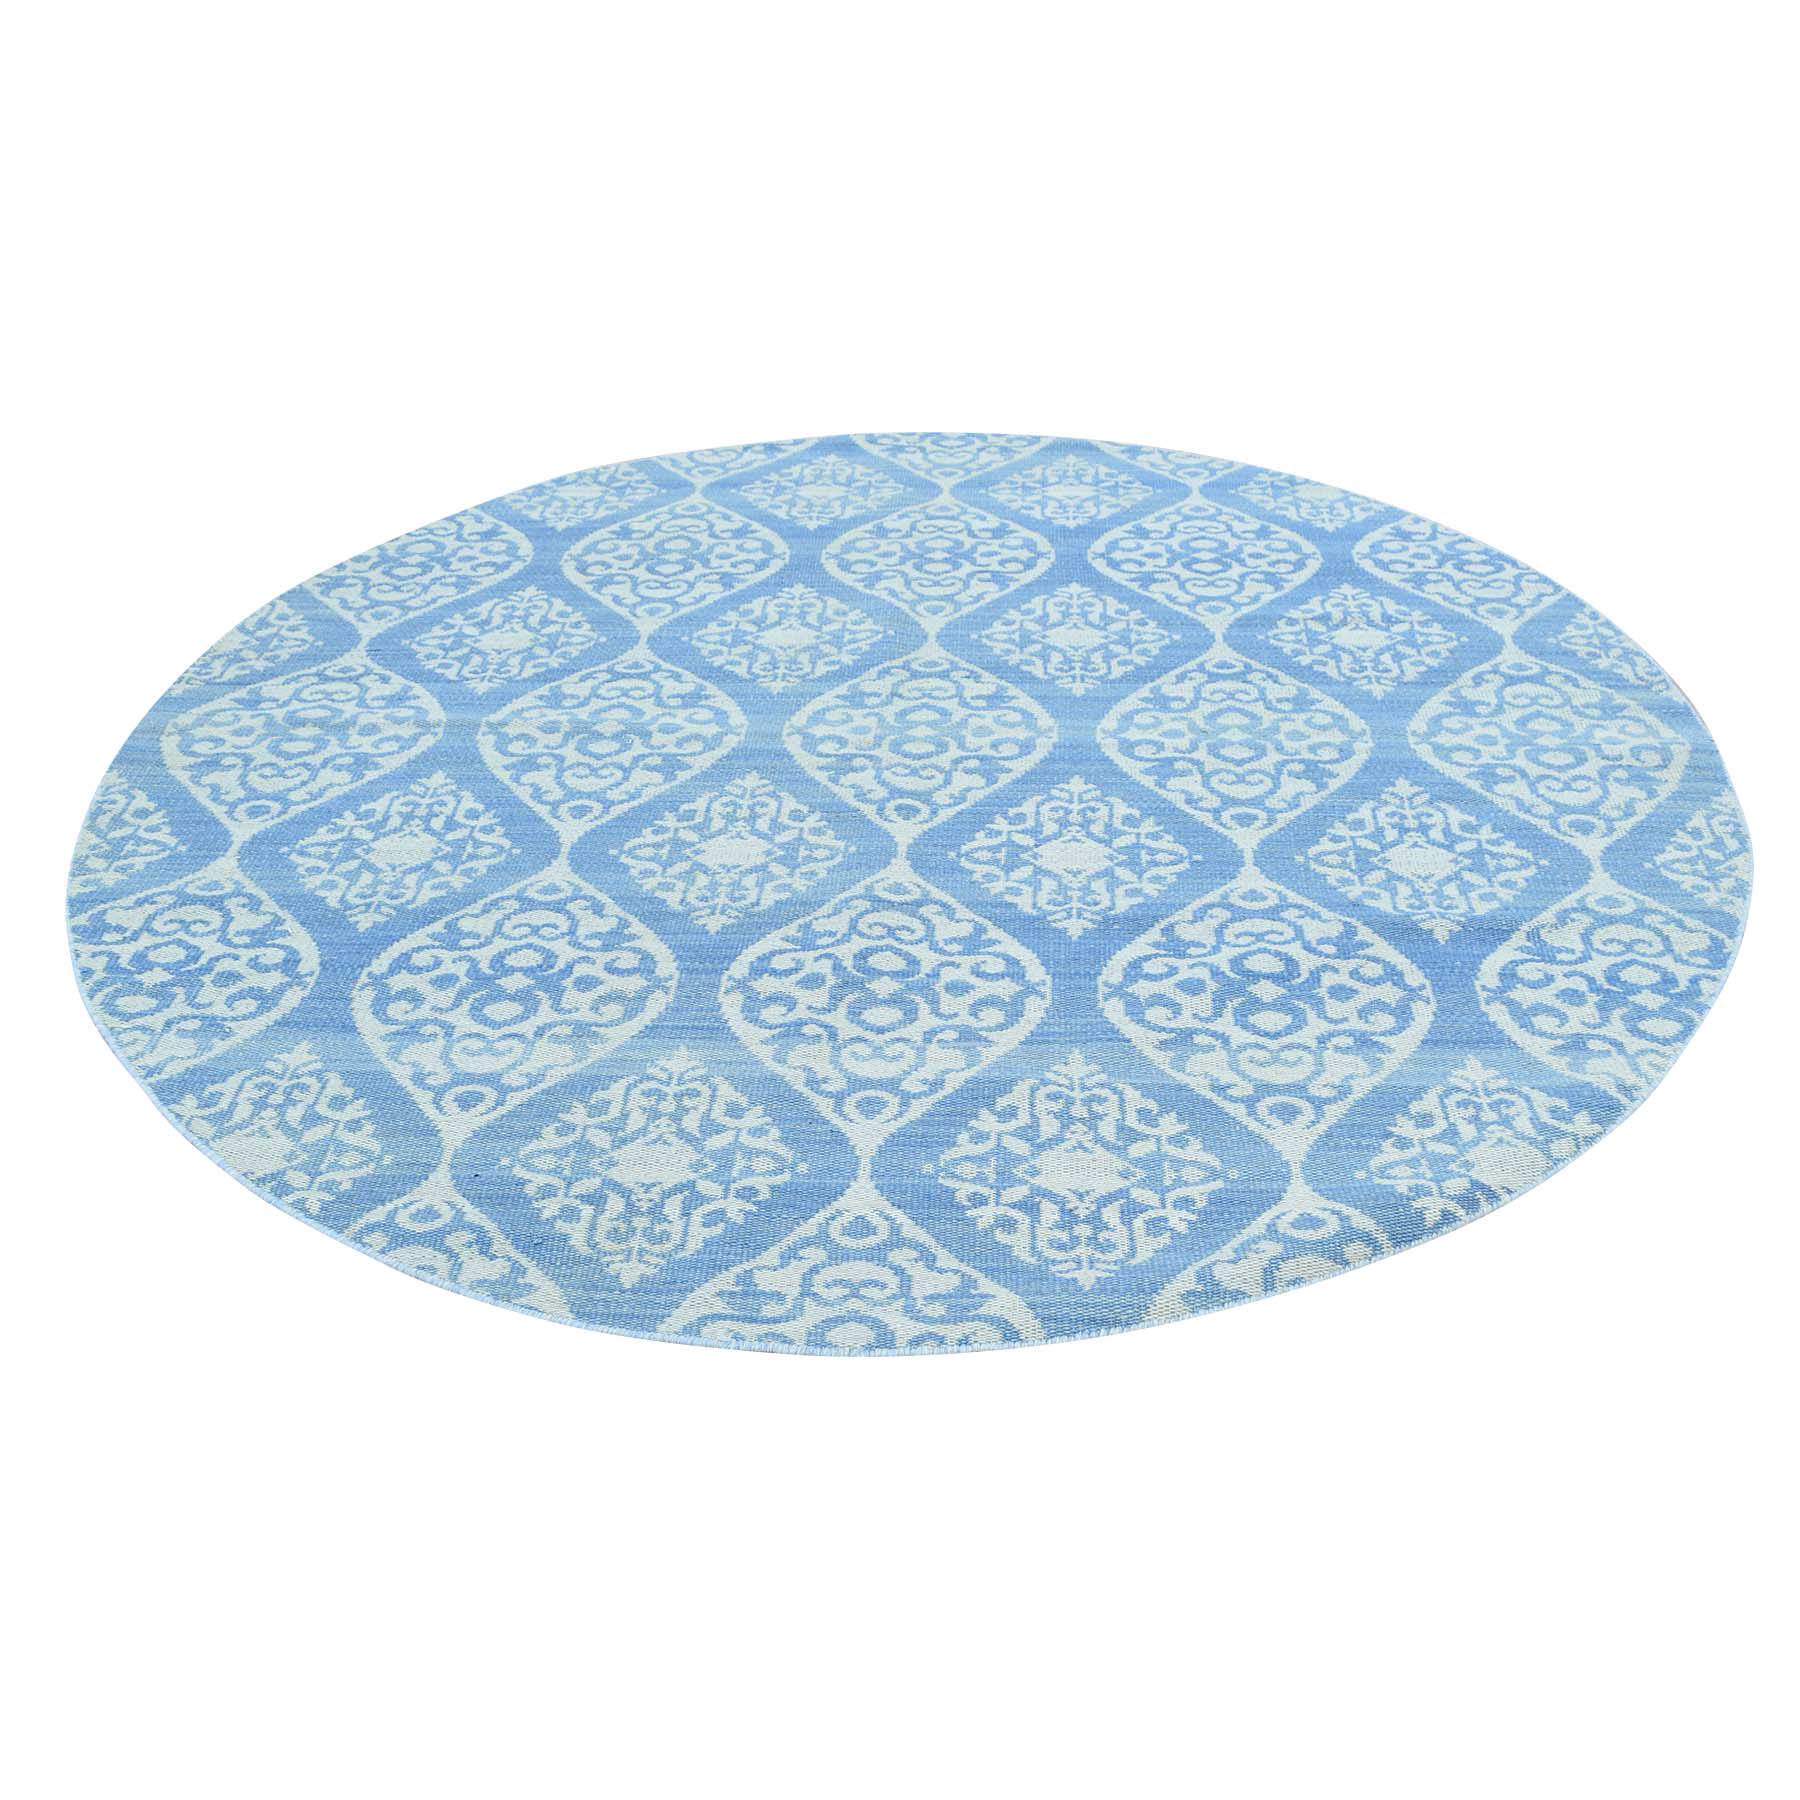 6'X6' Reversible Flat Weave Round Hand Woven Durie Kilim Rug moac7b9a